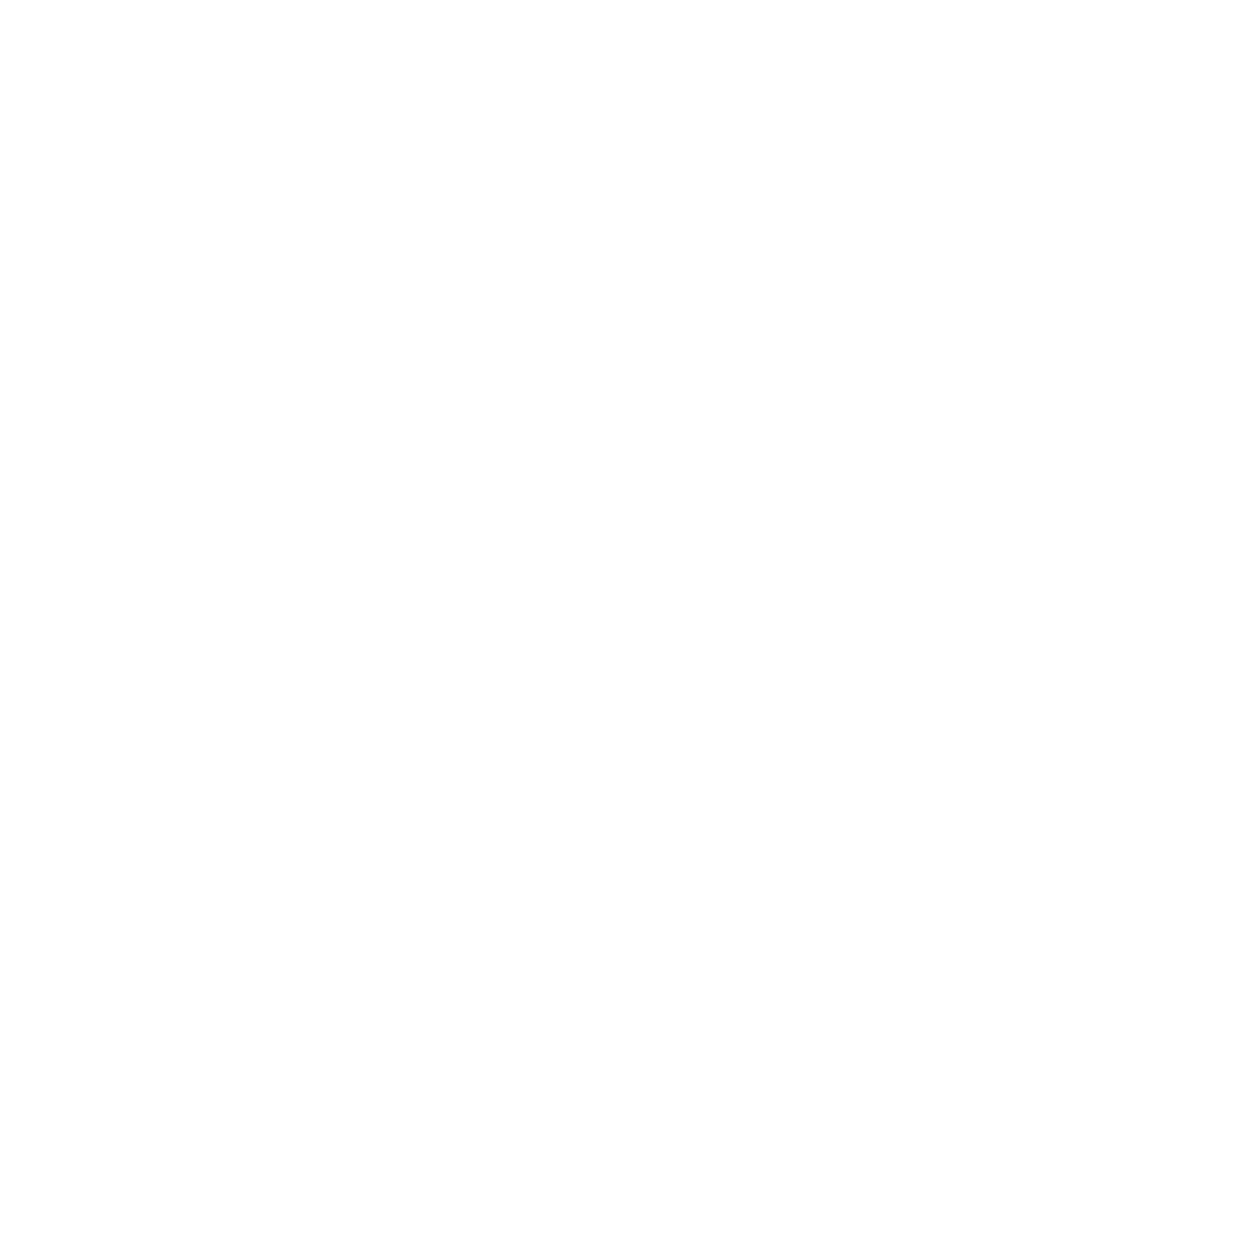 customized features 01